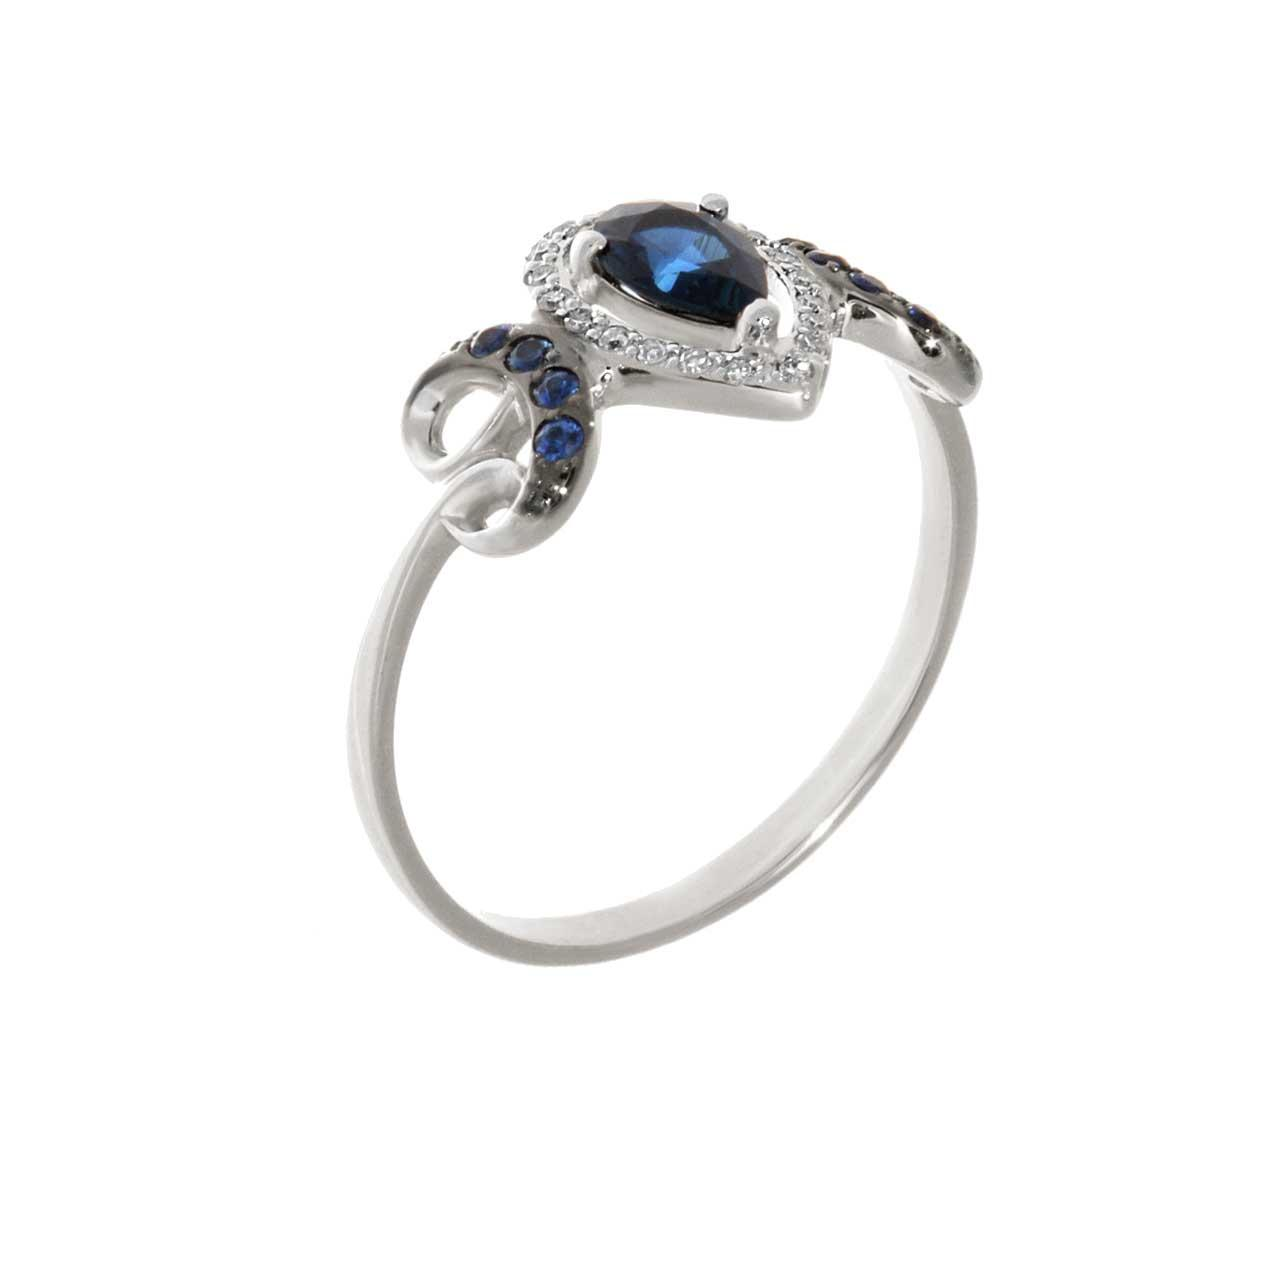 A Decadent Era-inspired Sapphire Ring